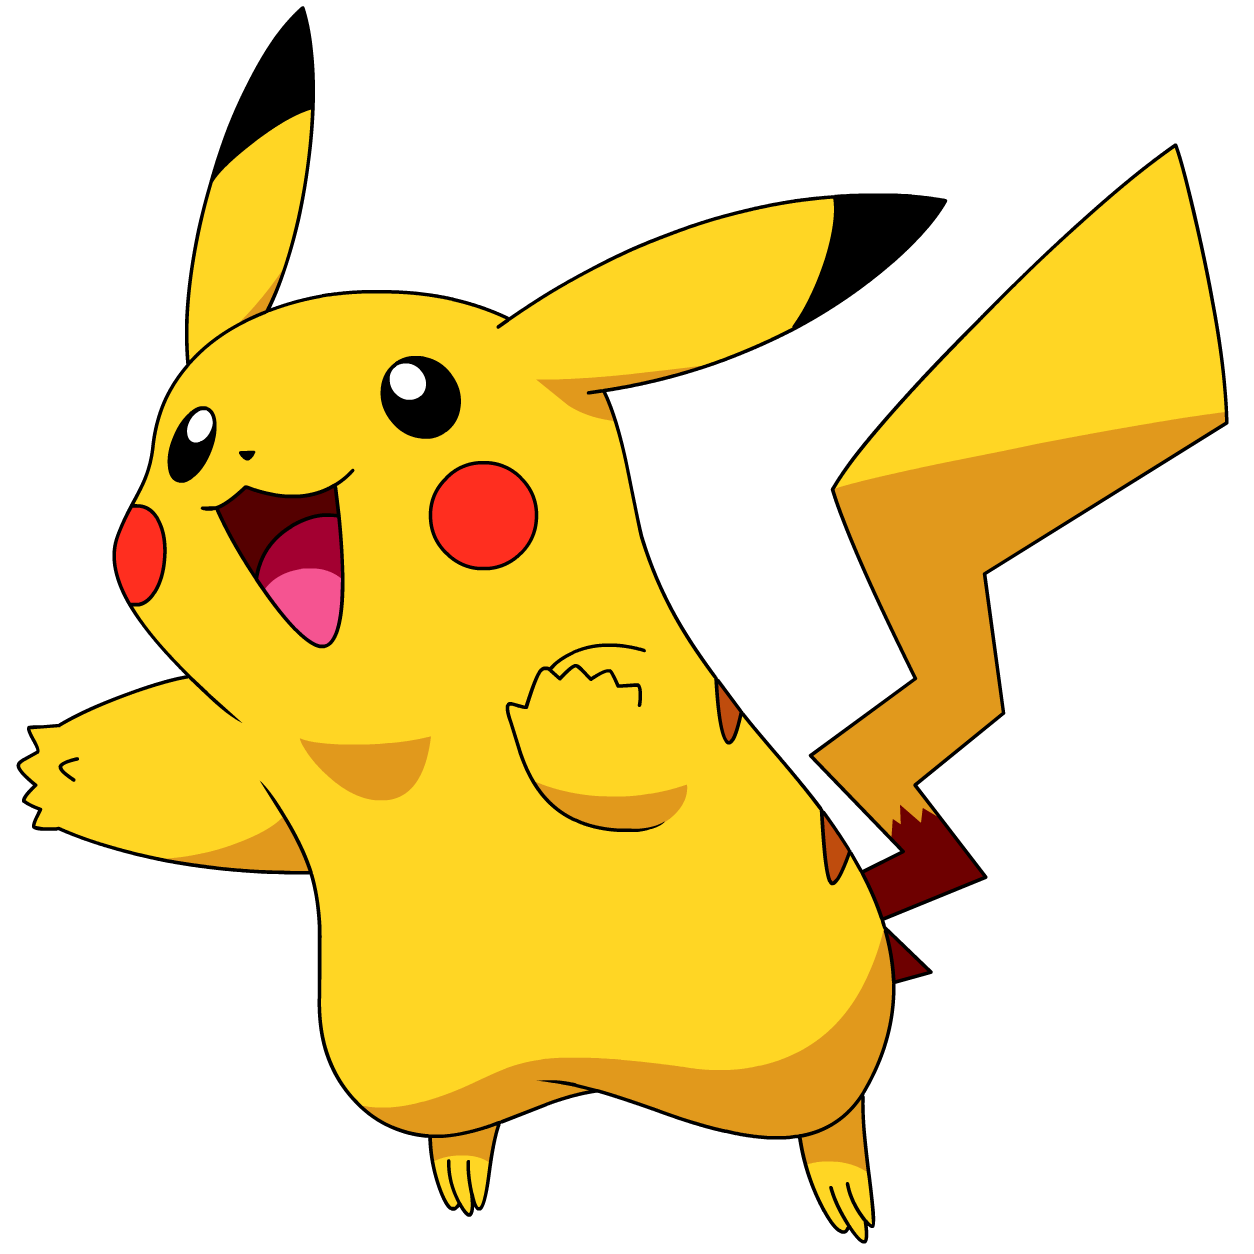 Free High-quality Pikachu download pikachu PNG images